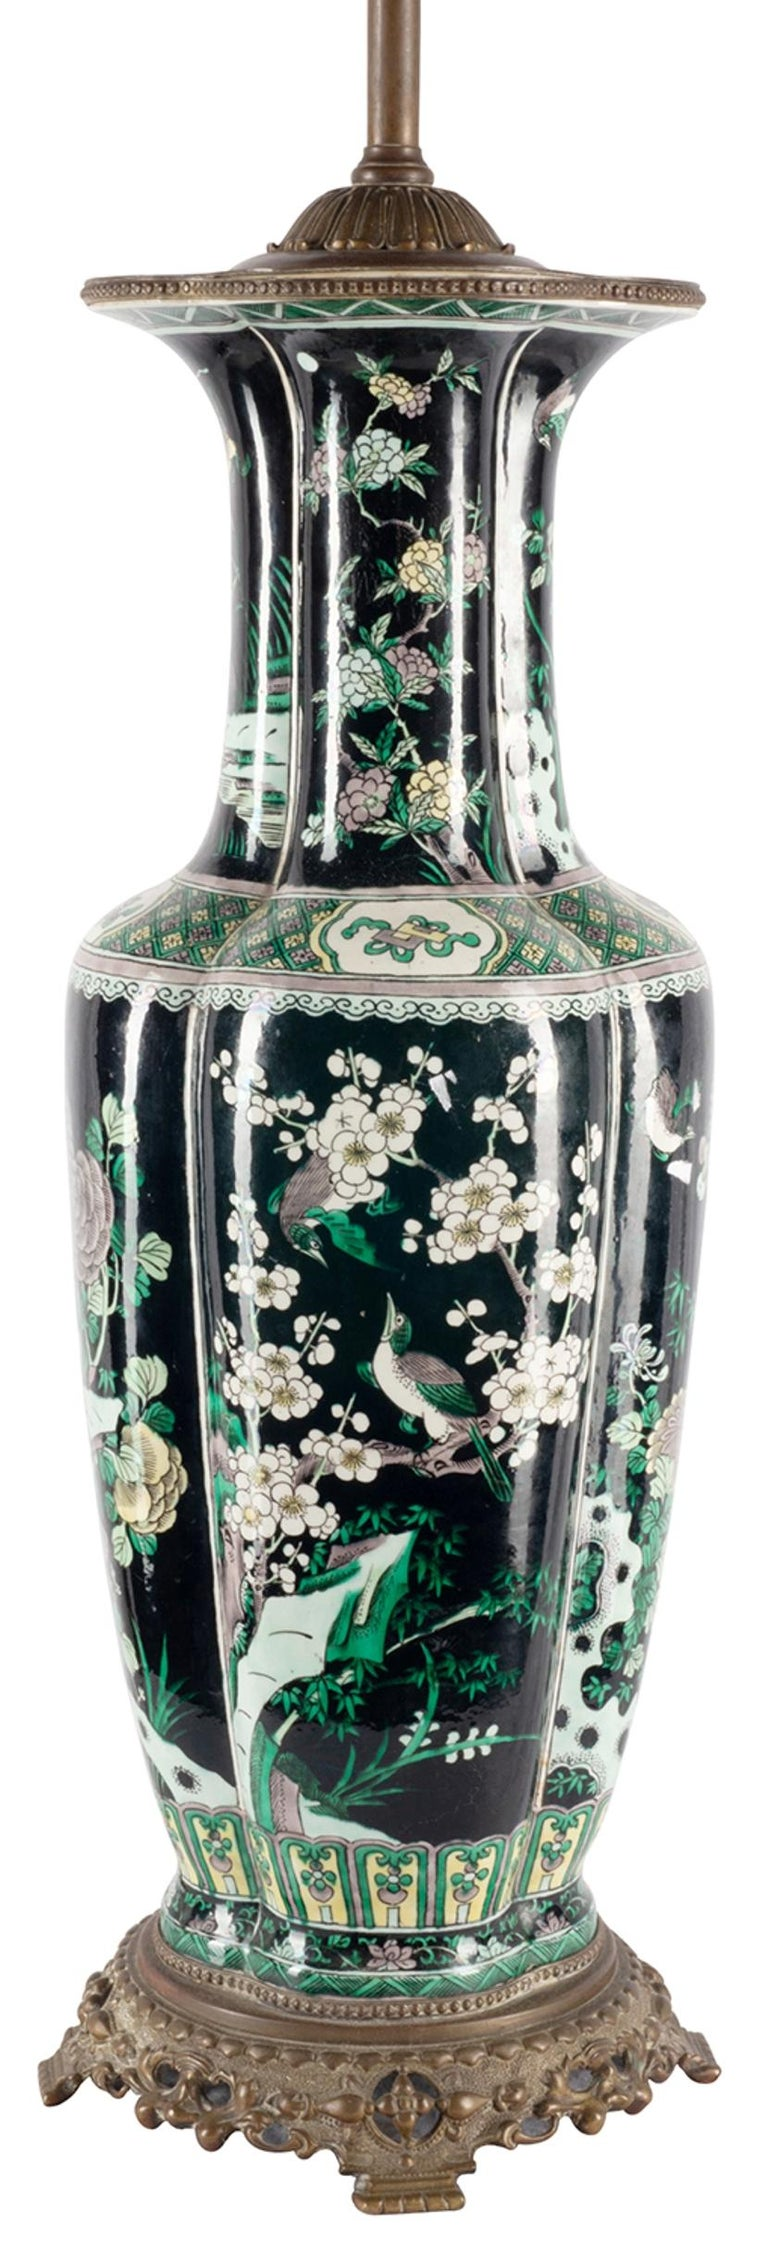 Chinese 19th Century Famille Noire Vase / Lamp For Sale 4